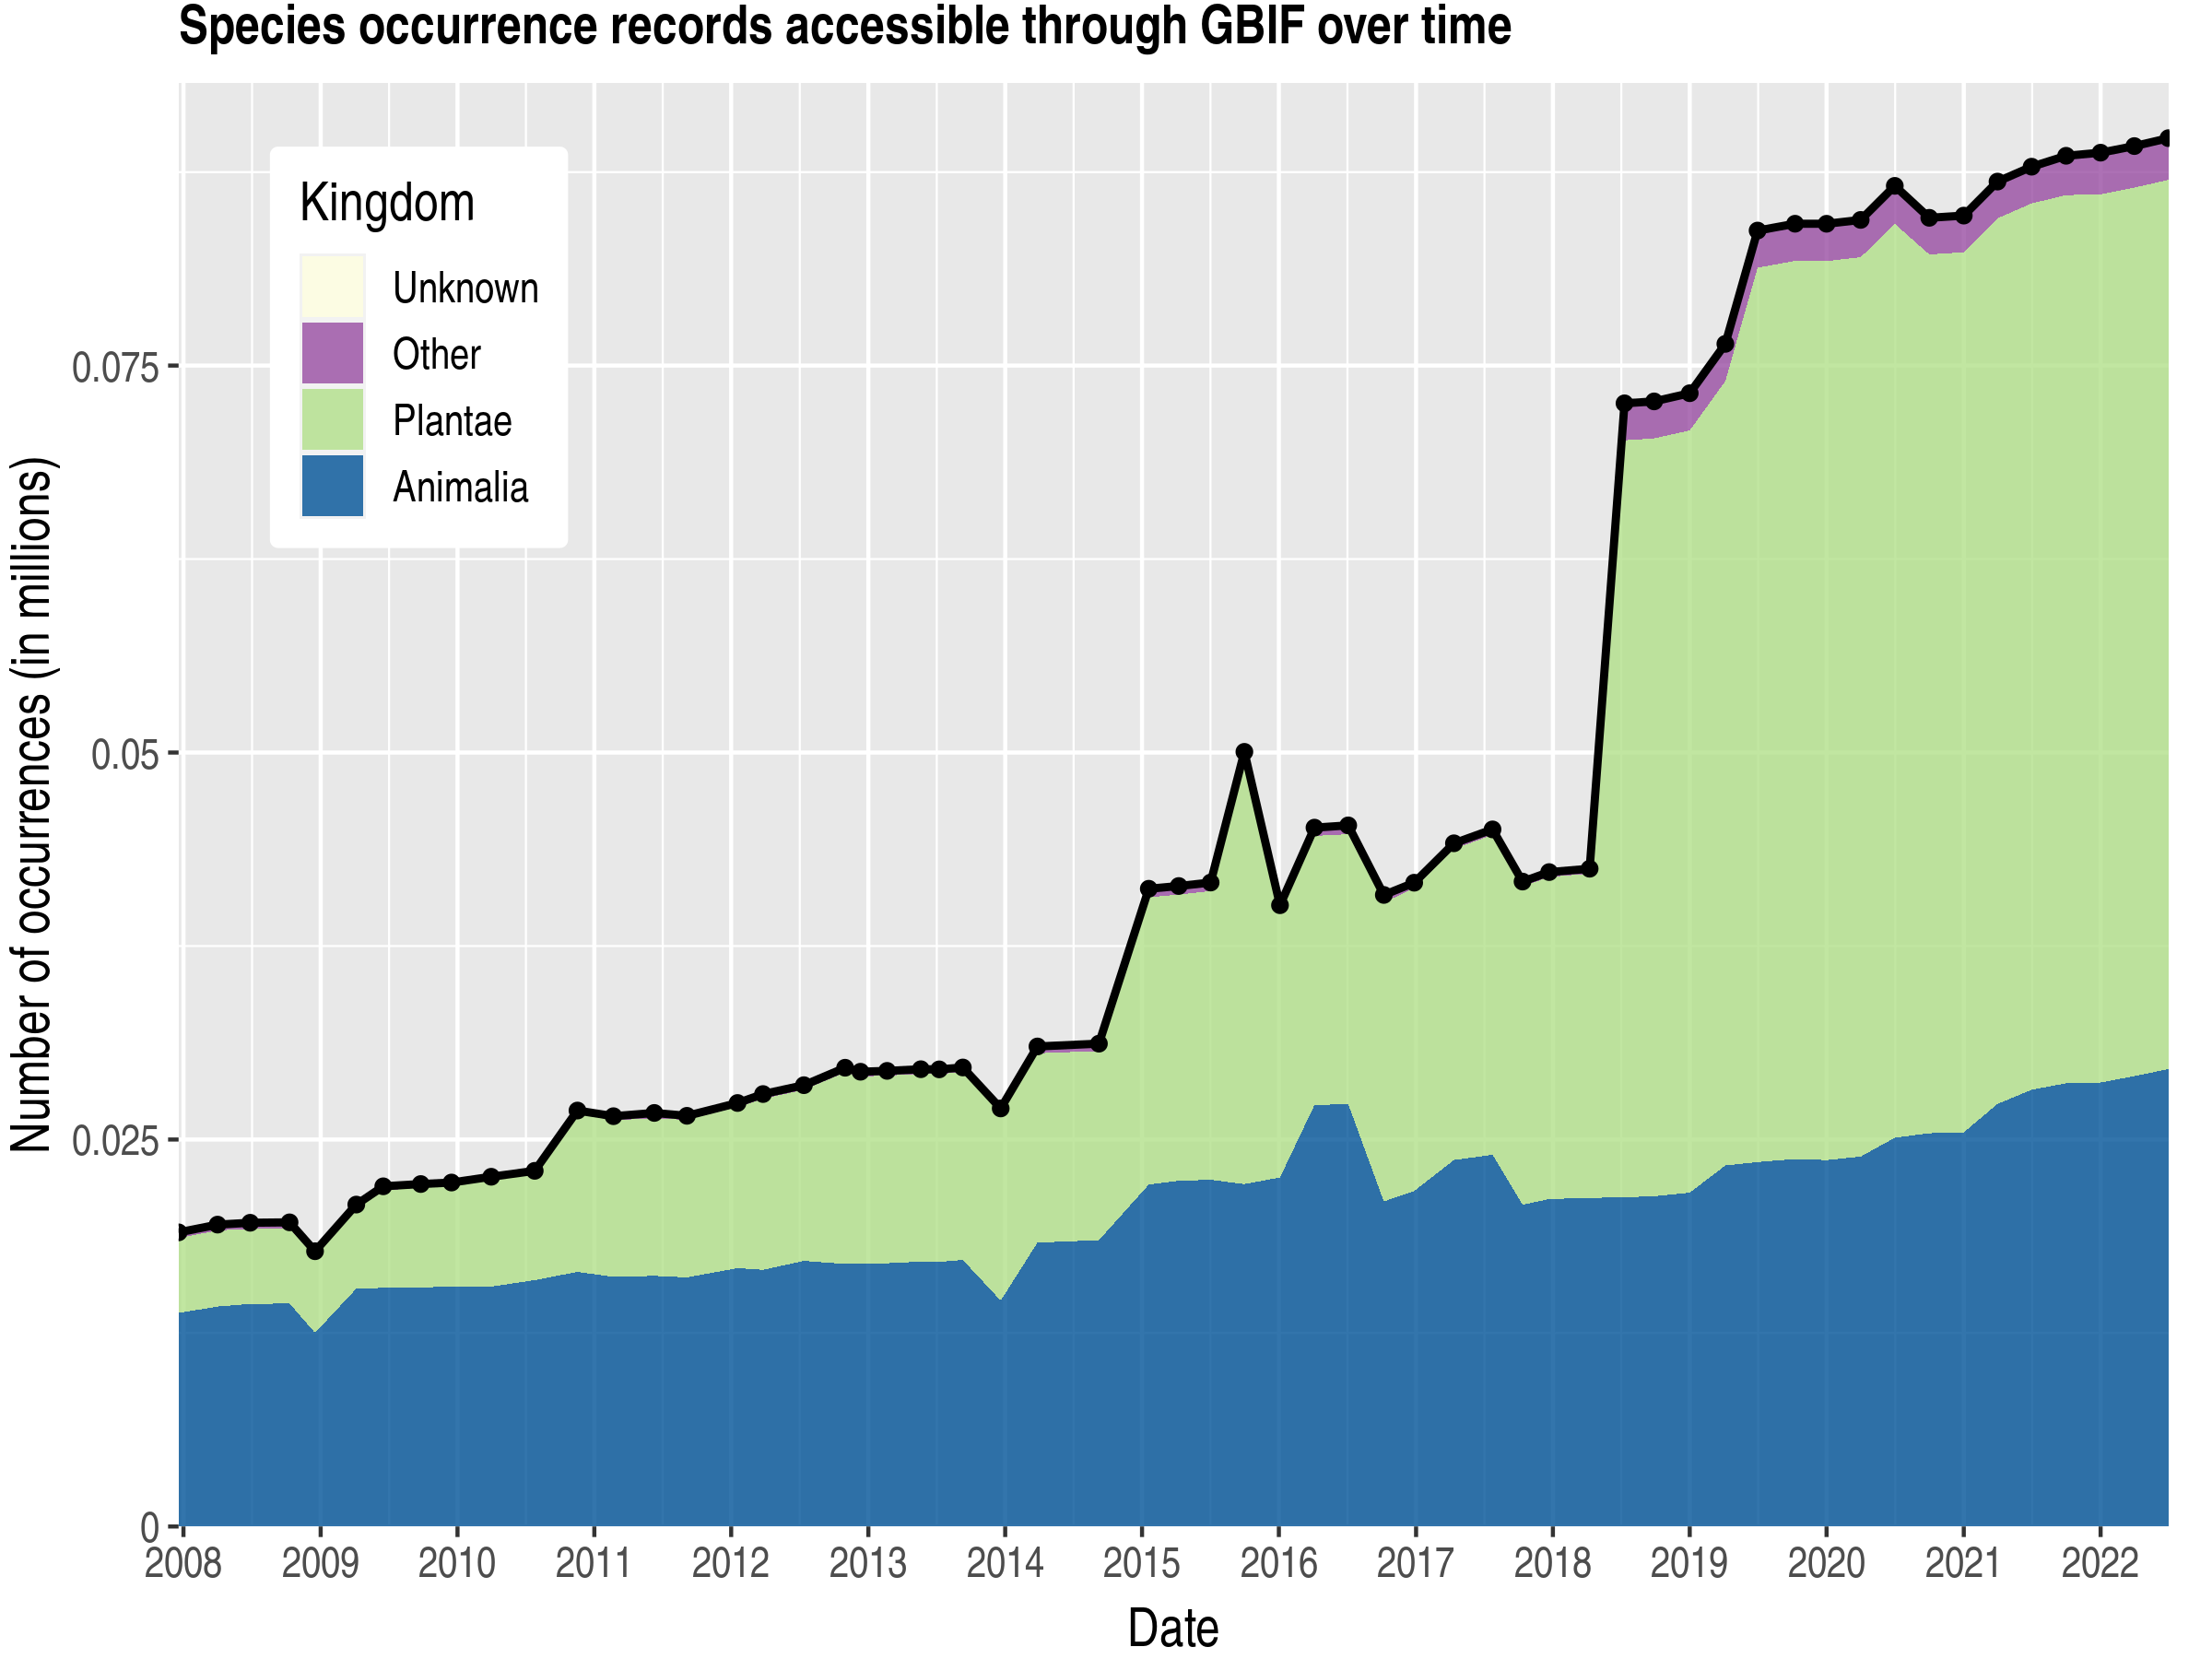 Data trend of records by kingdom about Burundi